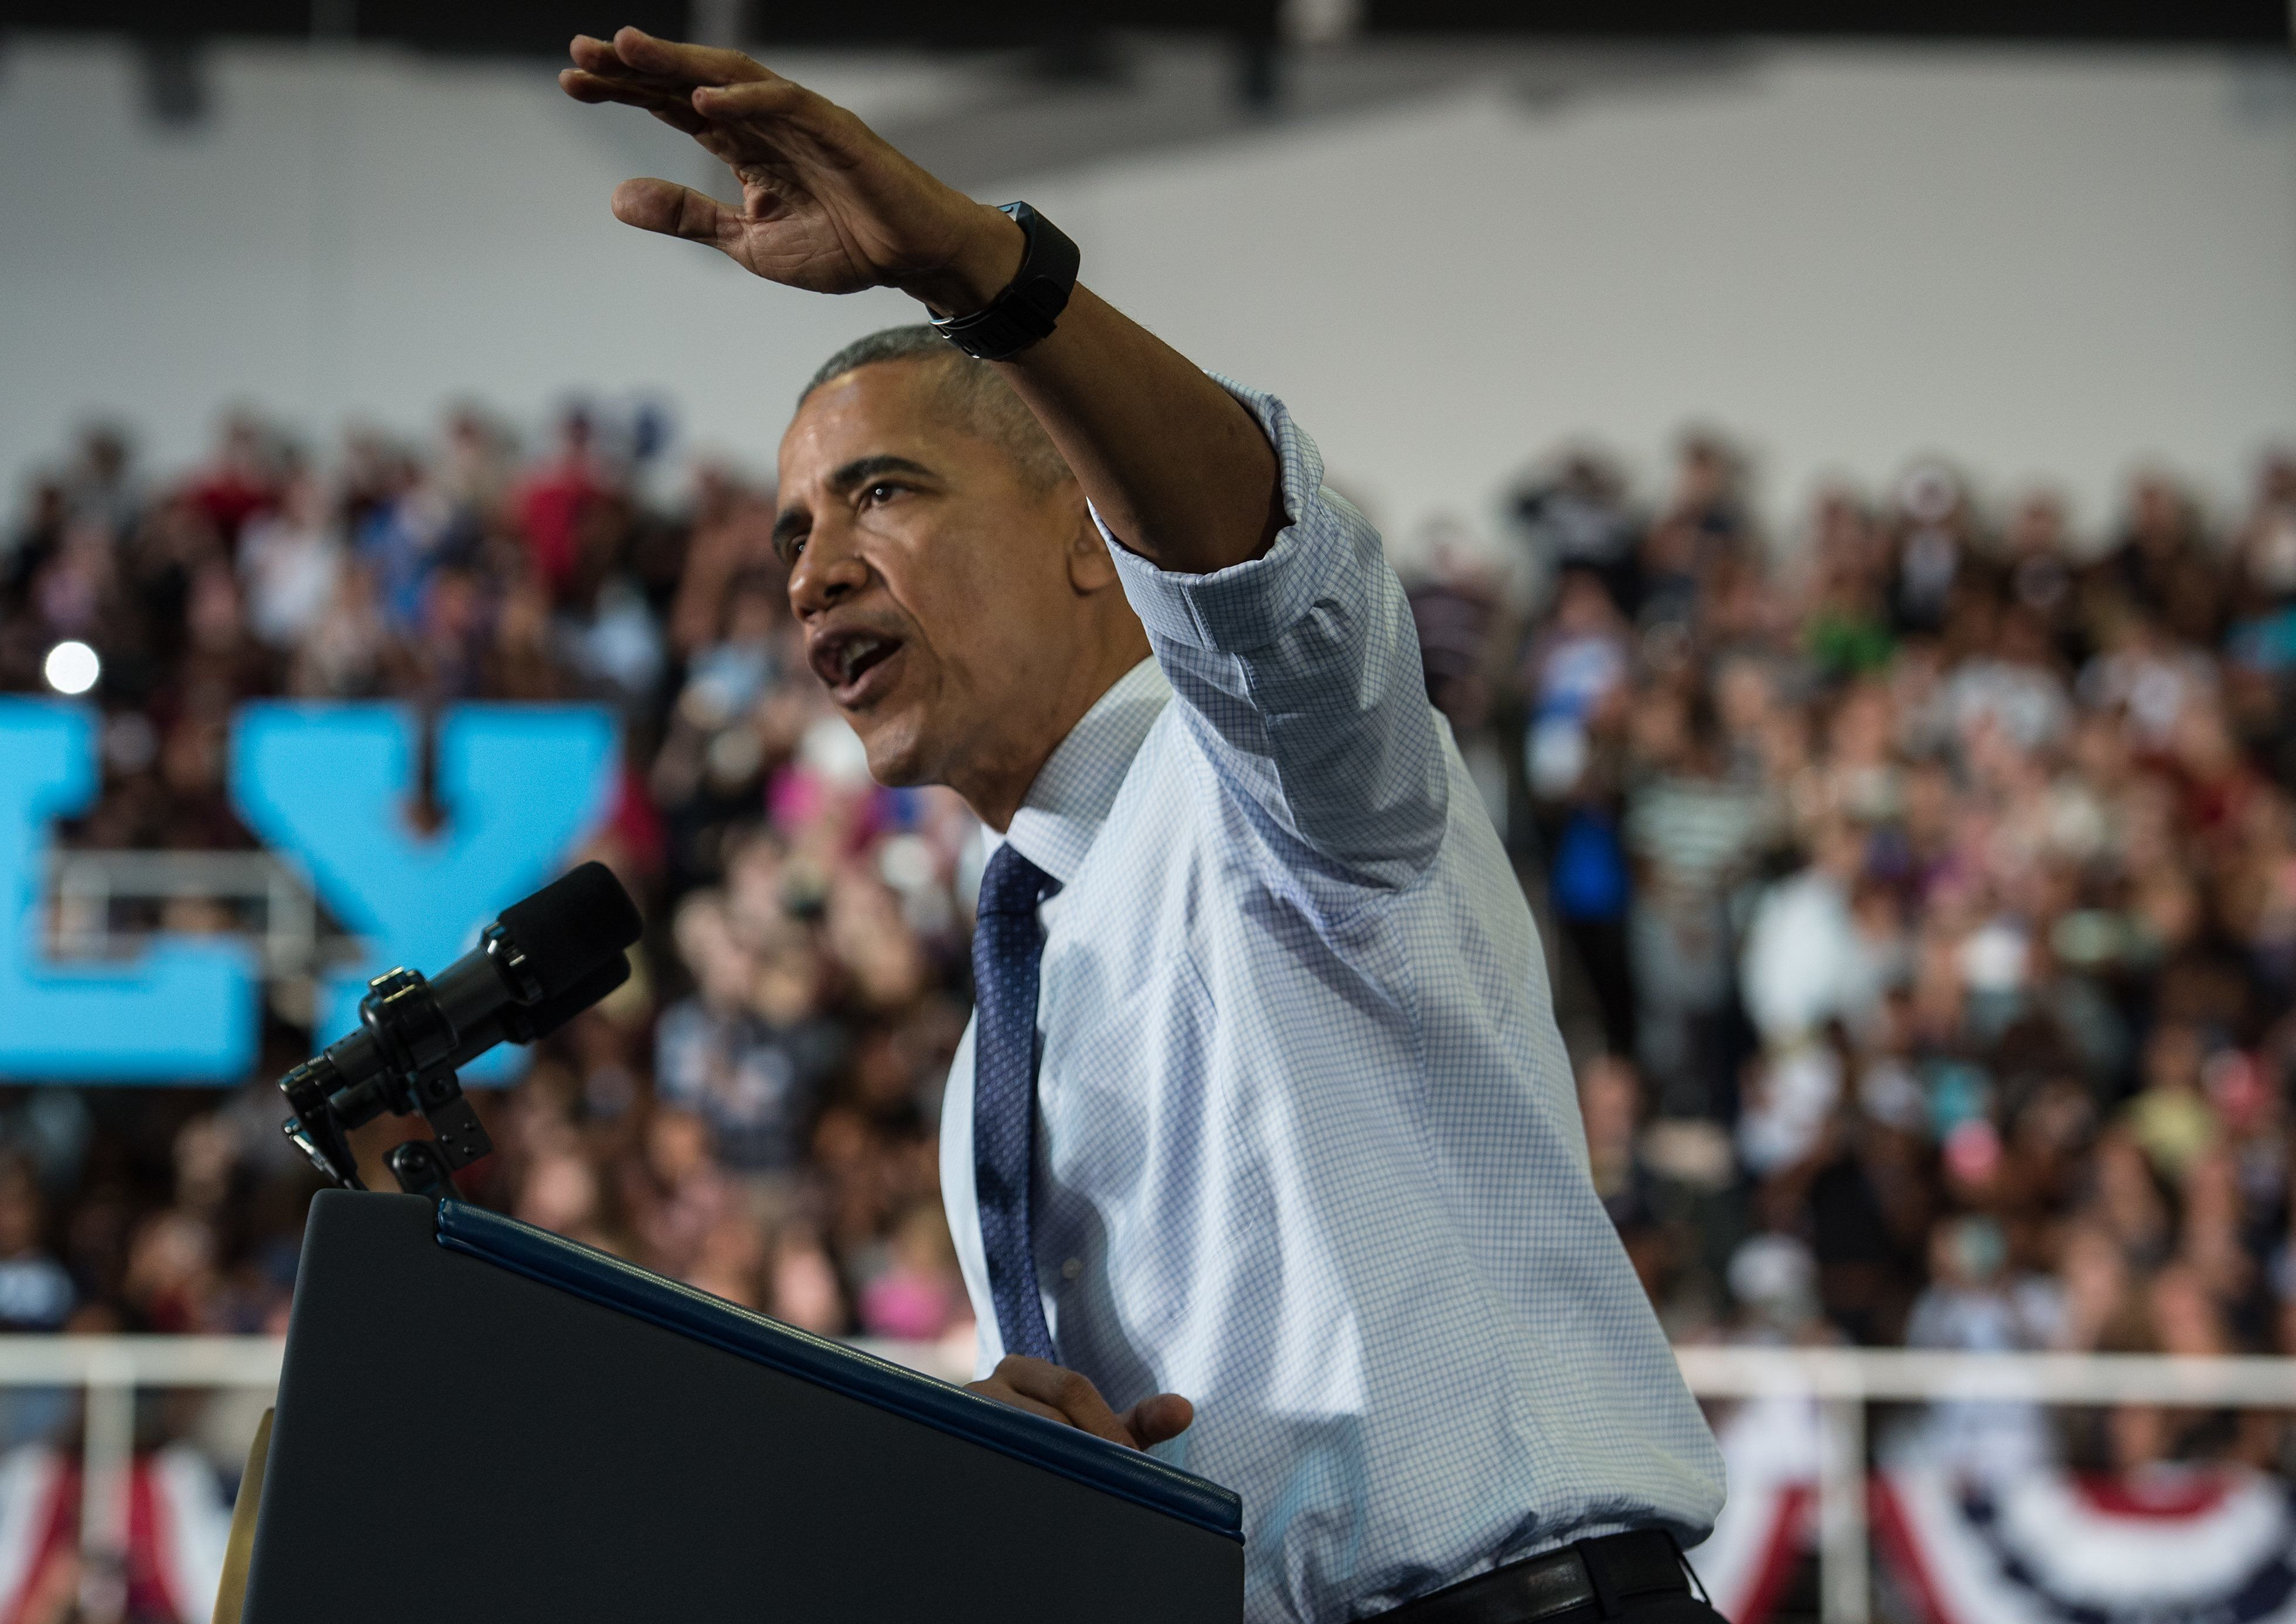 When President Barack Obama was elected in 2008, the economy was in a tailspin.Now, it is experiencing the longest cons